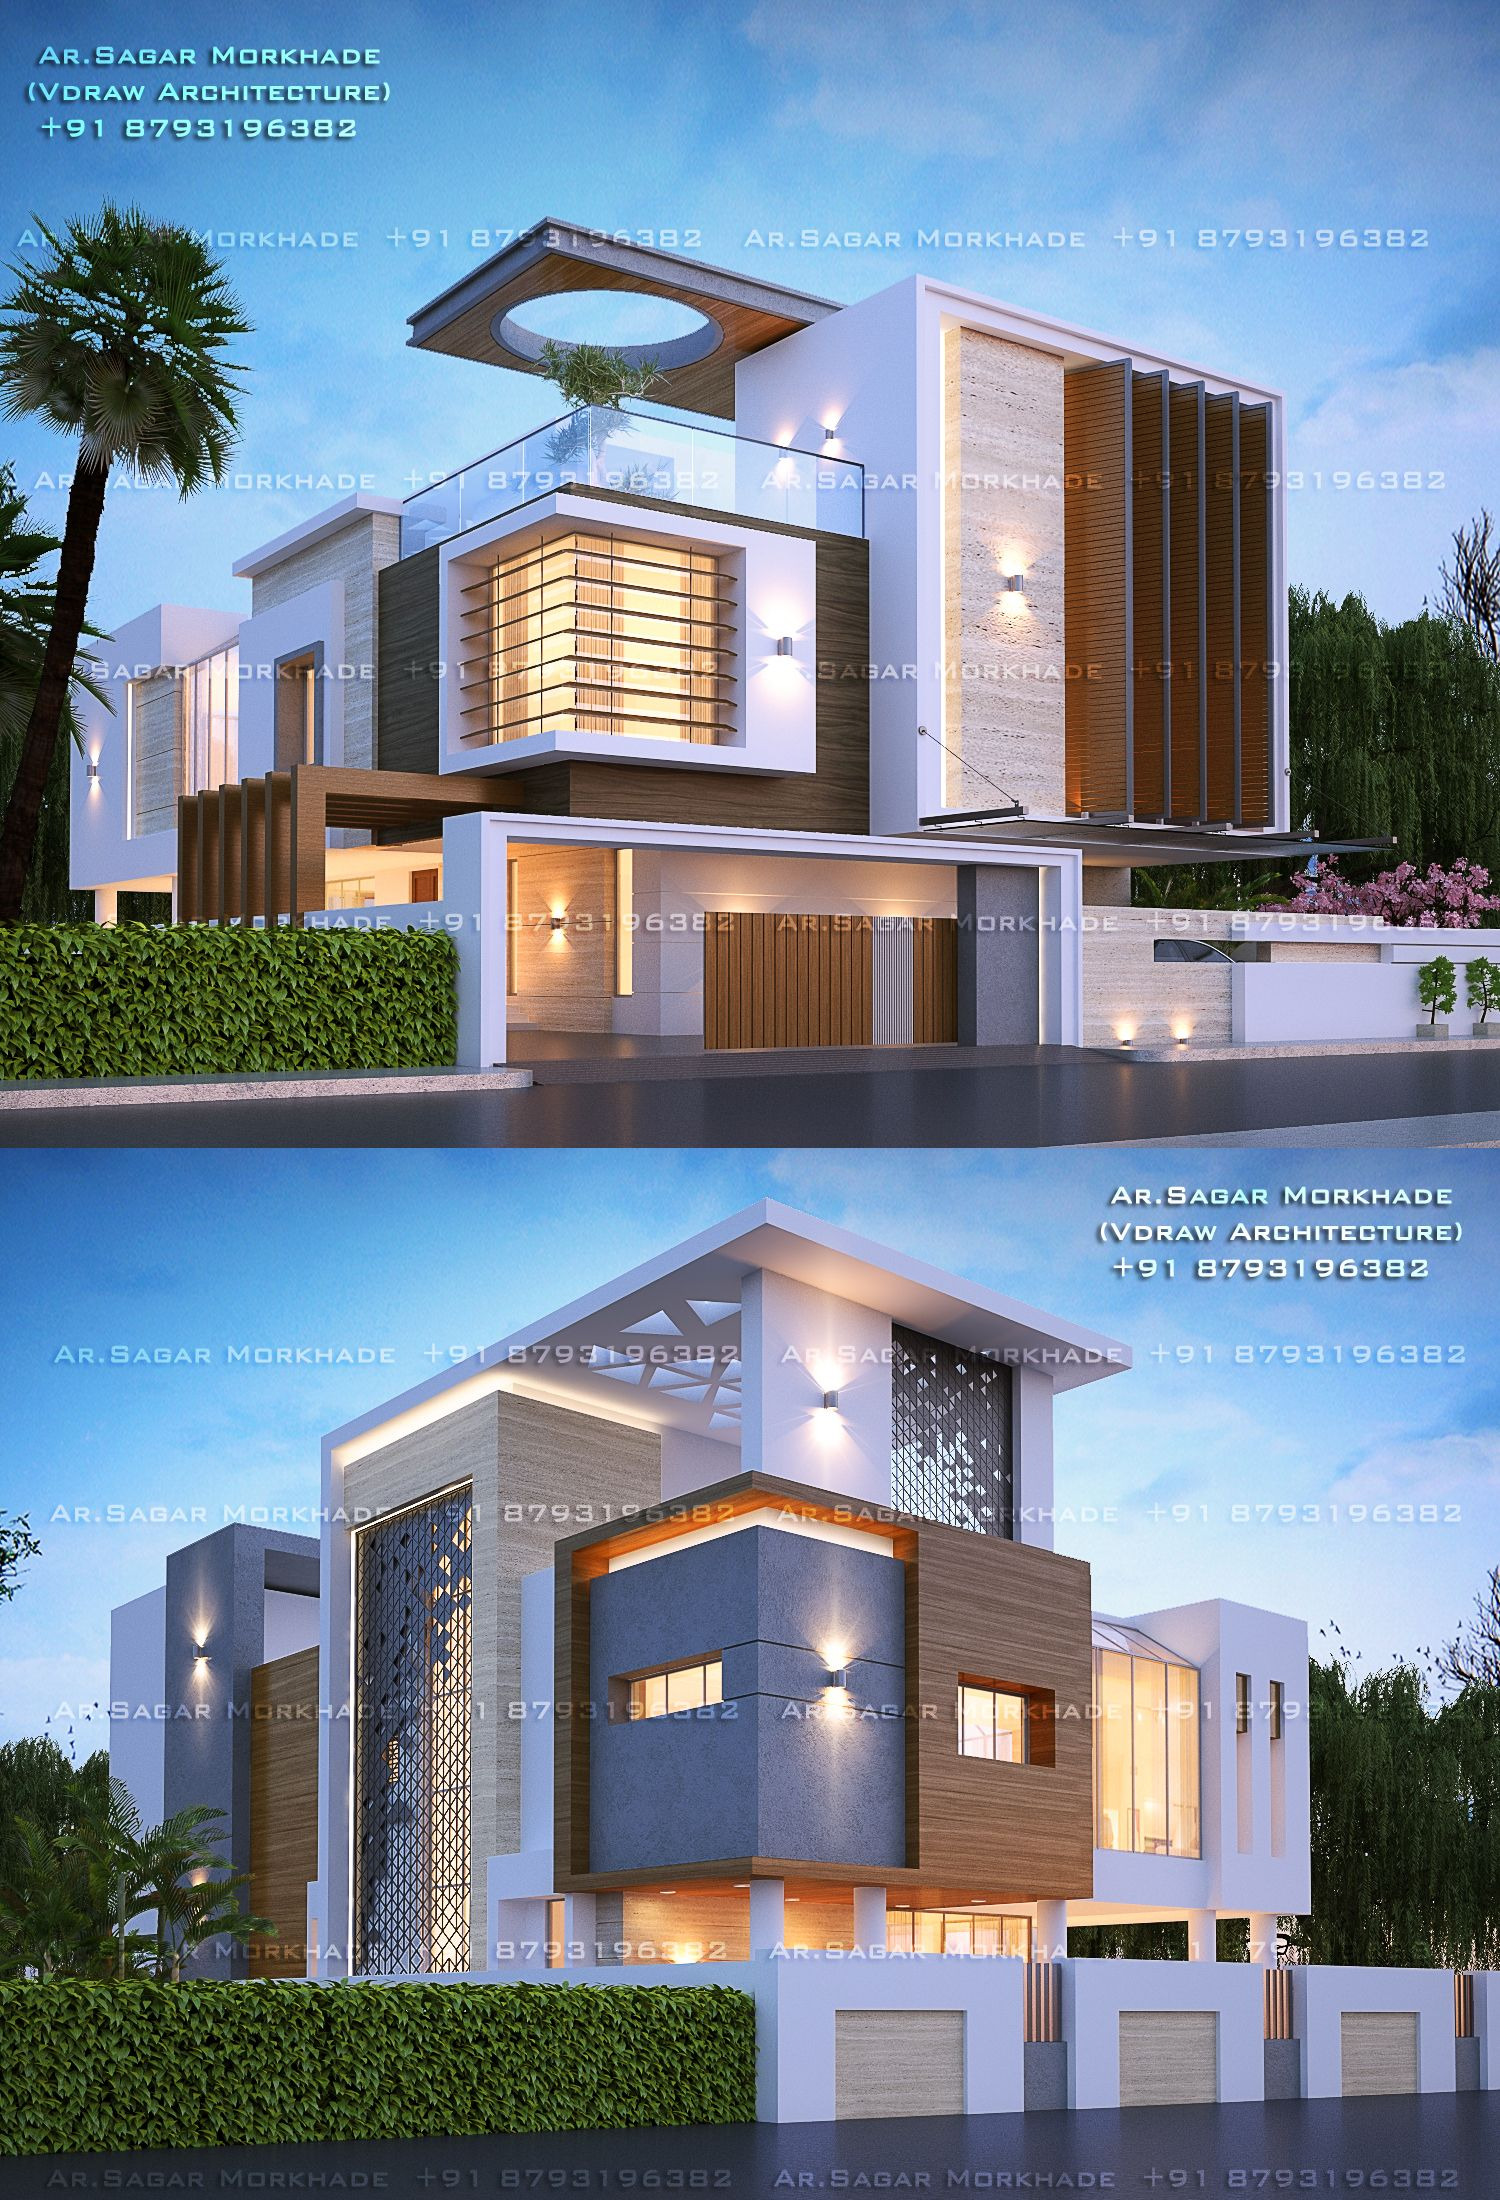 Modern Architecture House Plans 2021 - hotelsrem.com